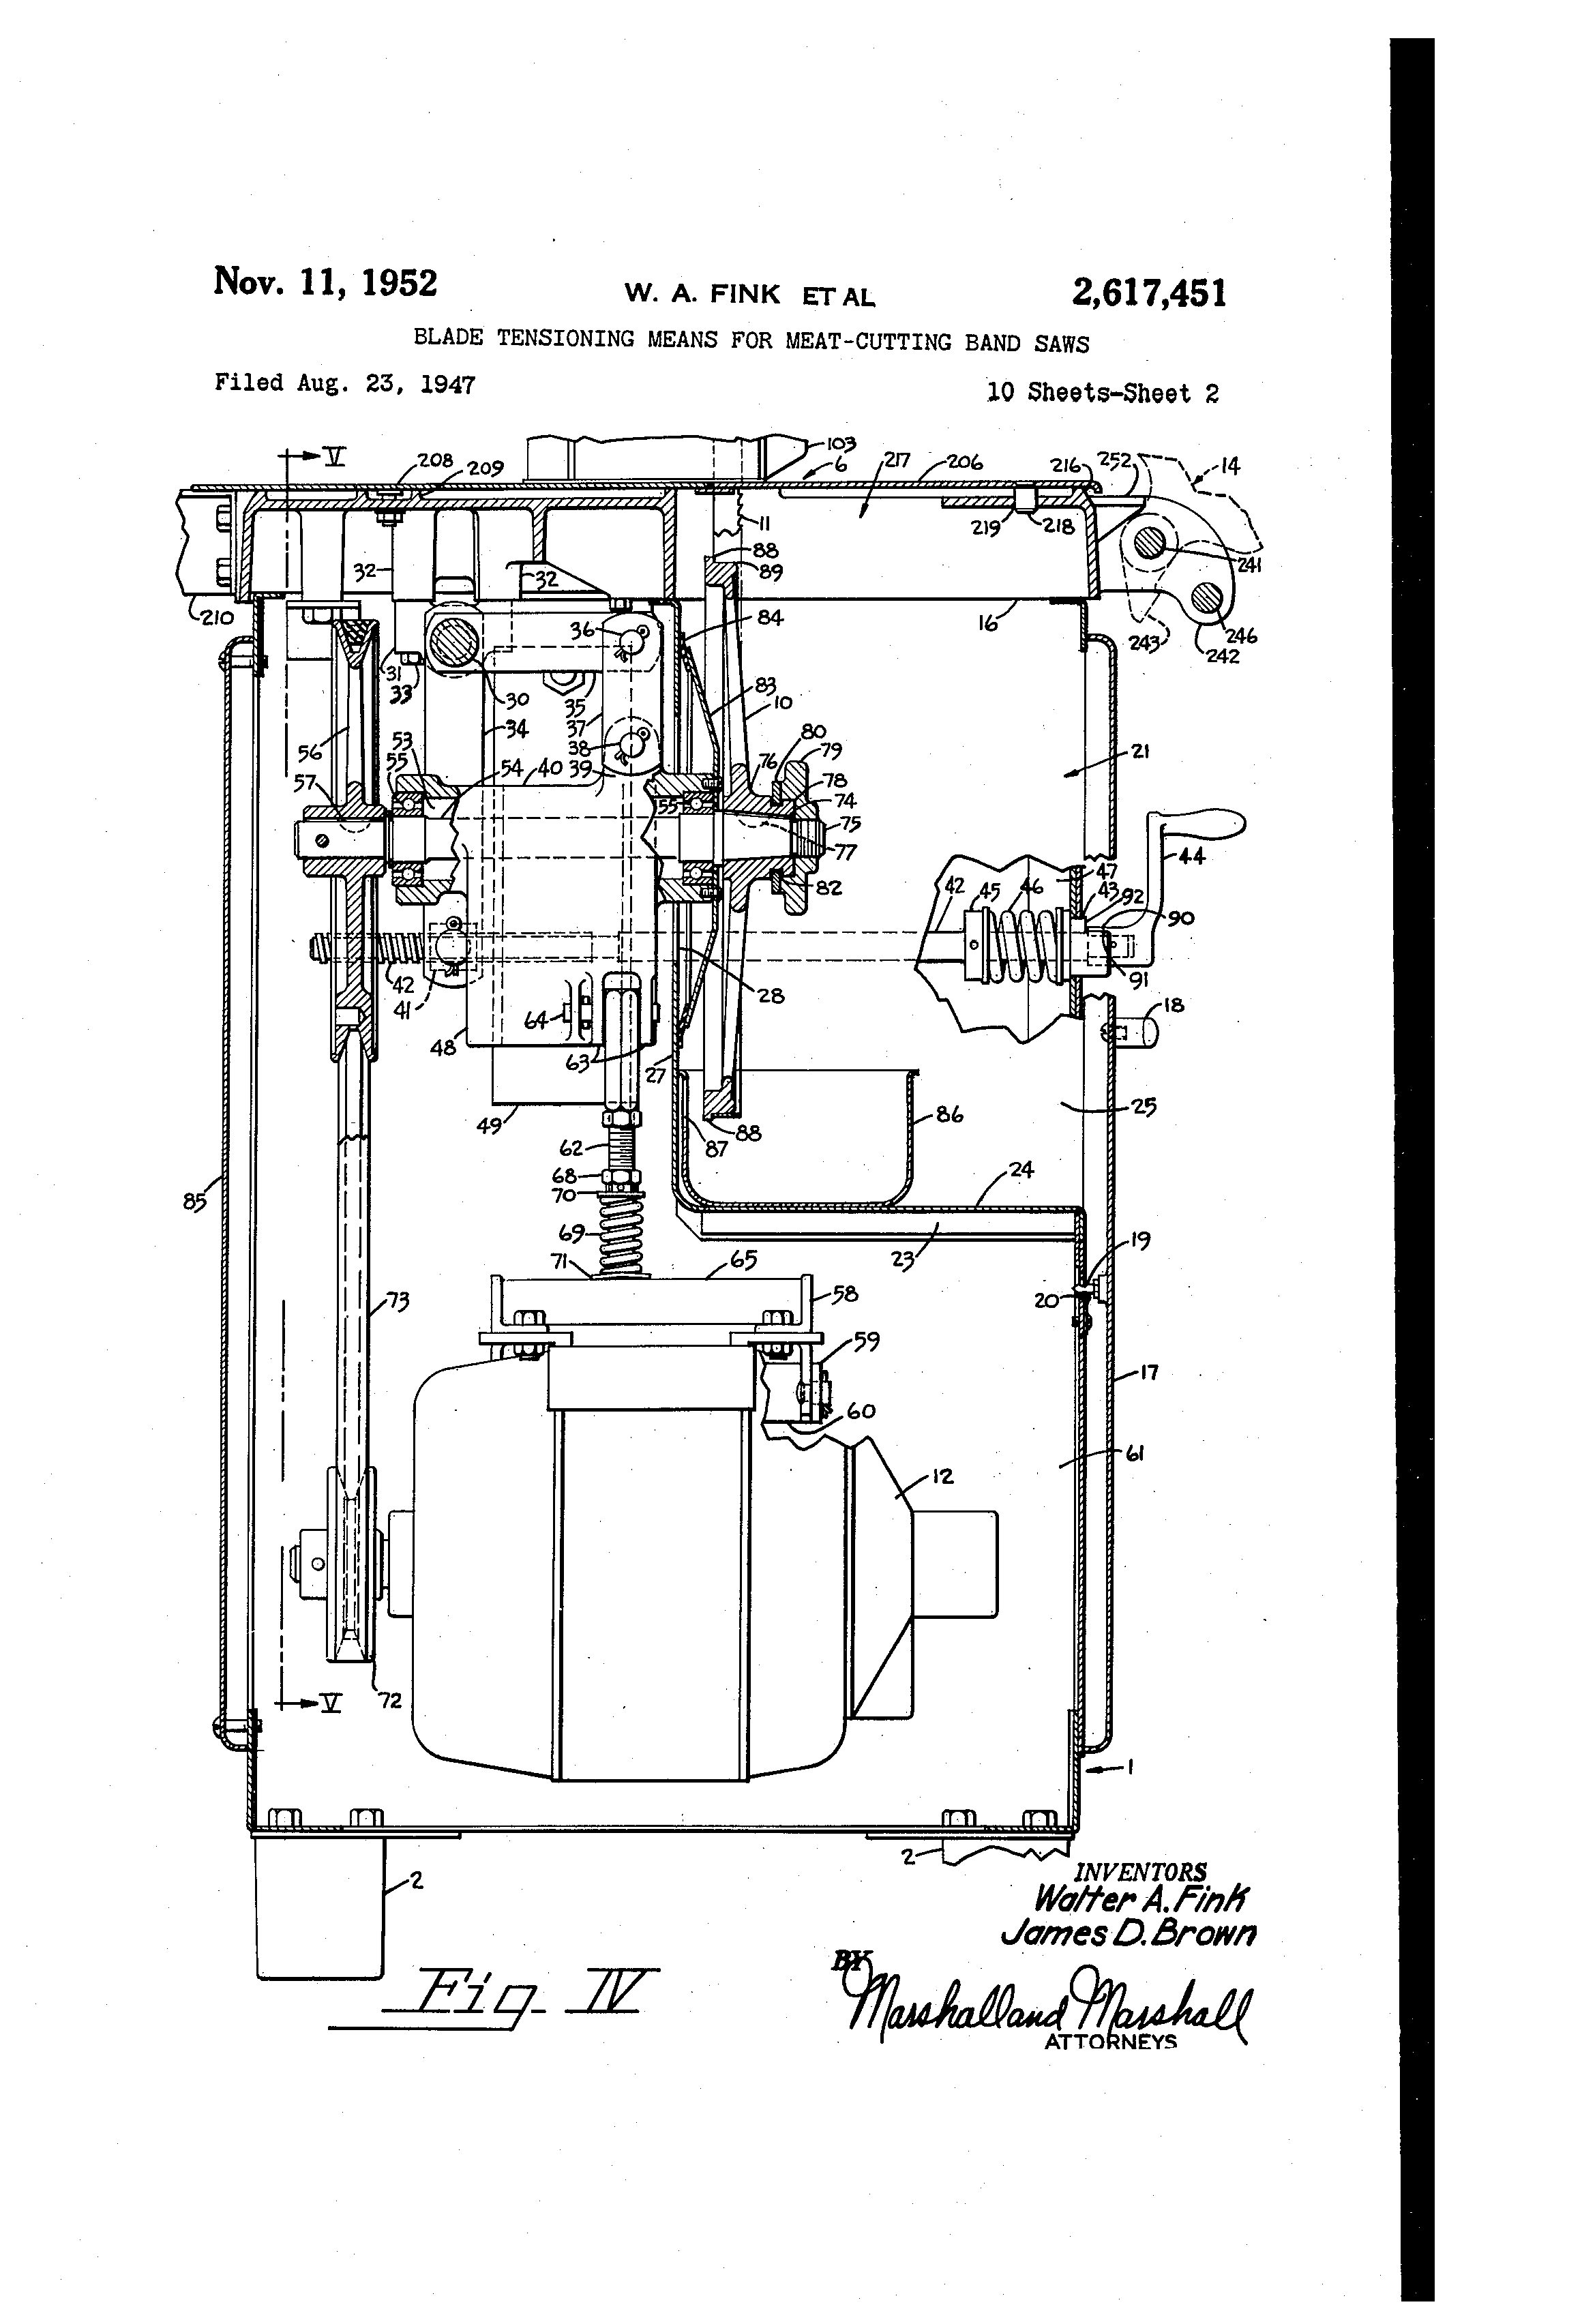 patent us2617451 - blade tensioning means for meat-cutting band saws